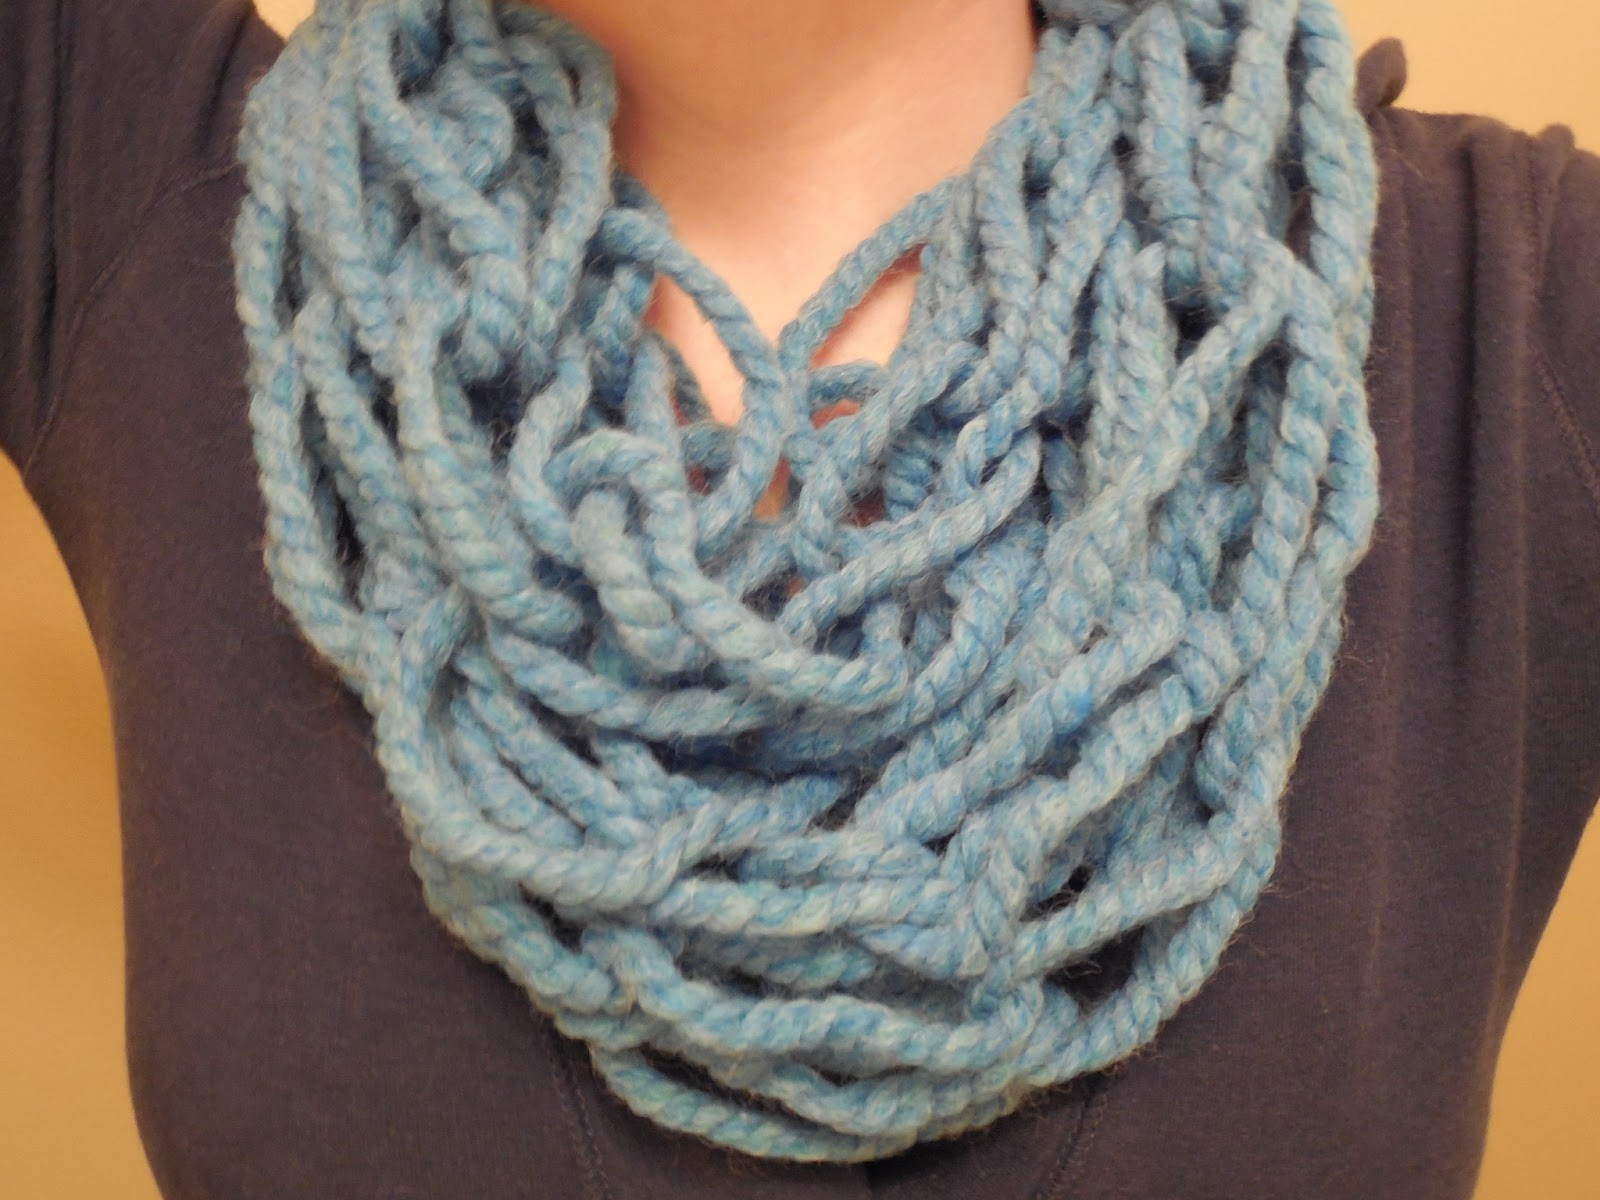 Knitting With Your Arms Instructions : Hooked on handmade arm knitting